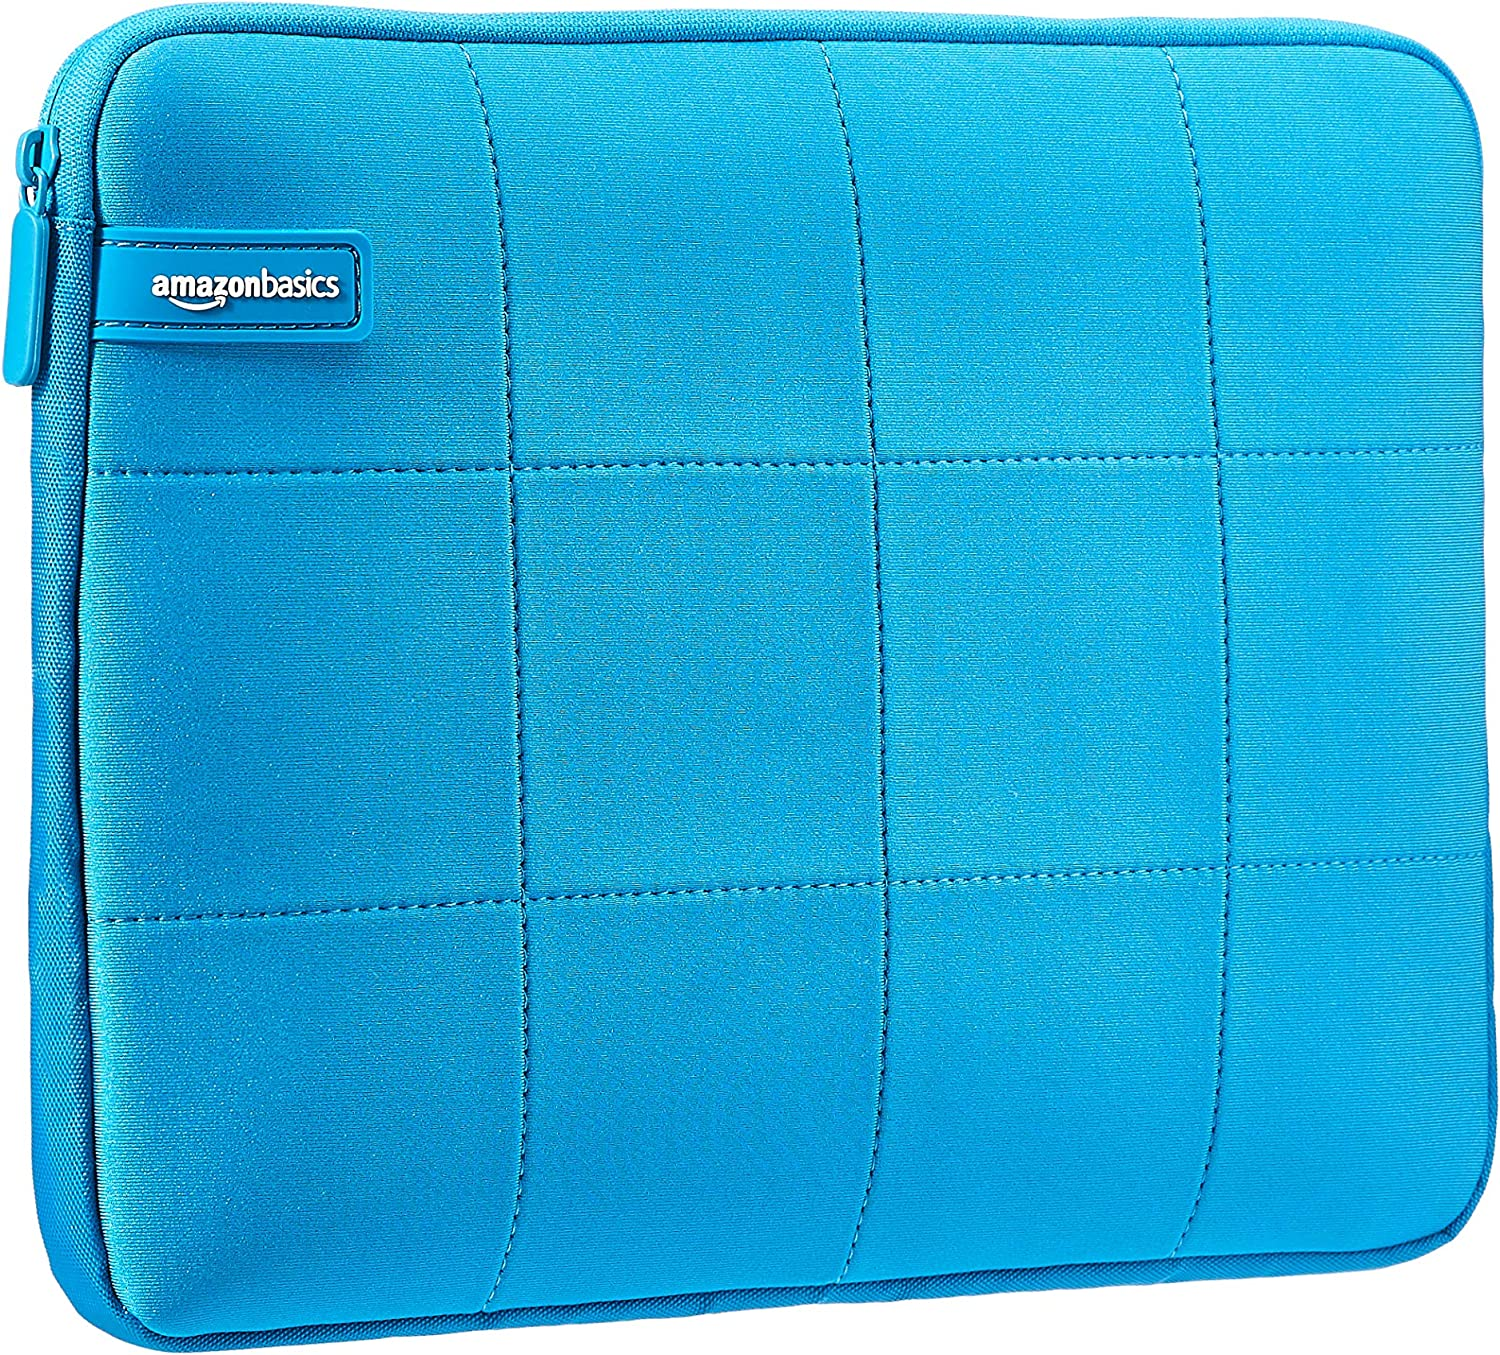 "AmazonBasics 11.6"" Urban Laptop Sleeve Case - Blue"